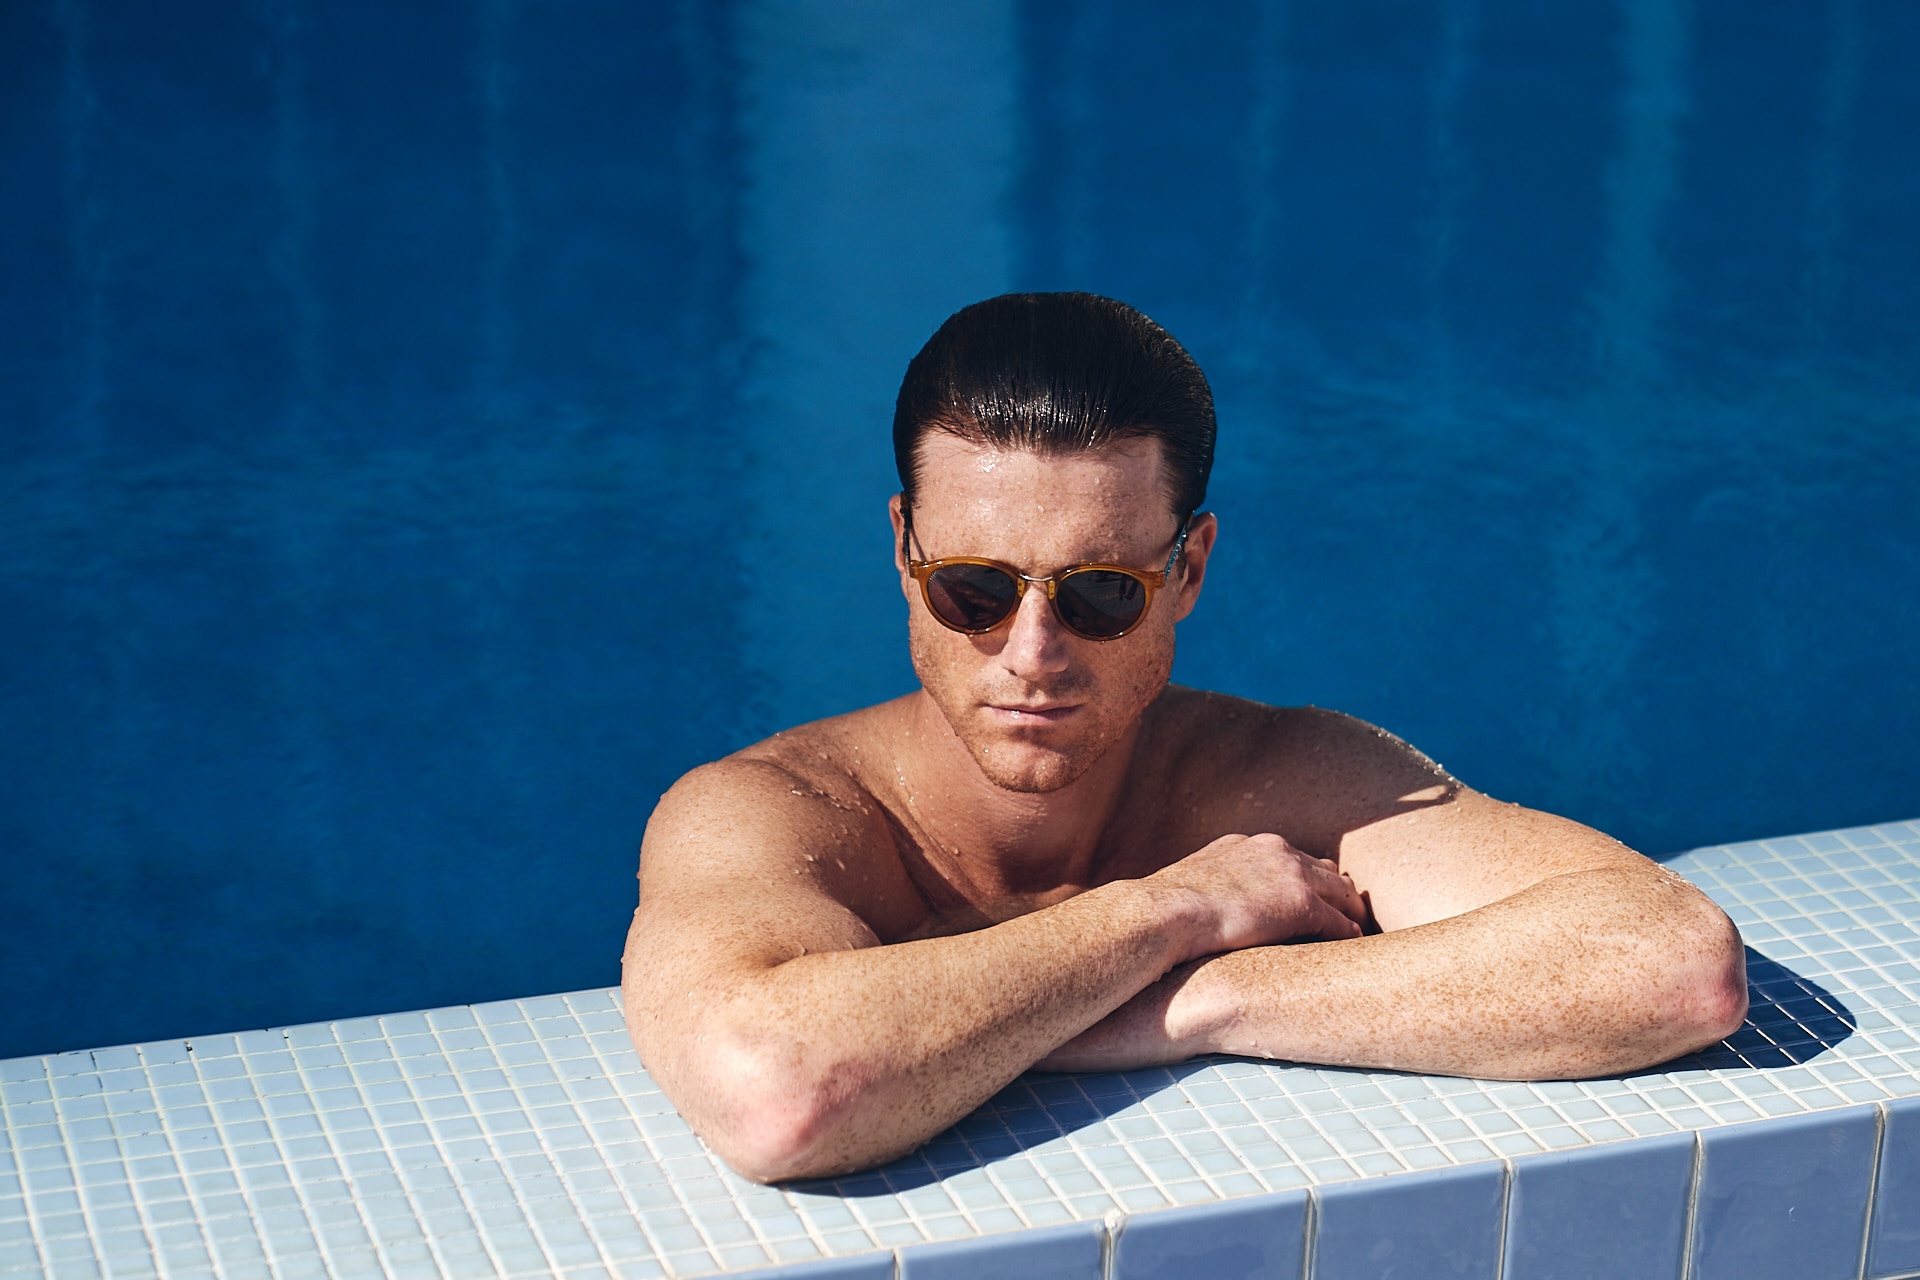 Man in the pool wear sunglasses at the Carillon Miami Lifestyle photography